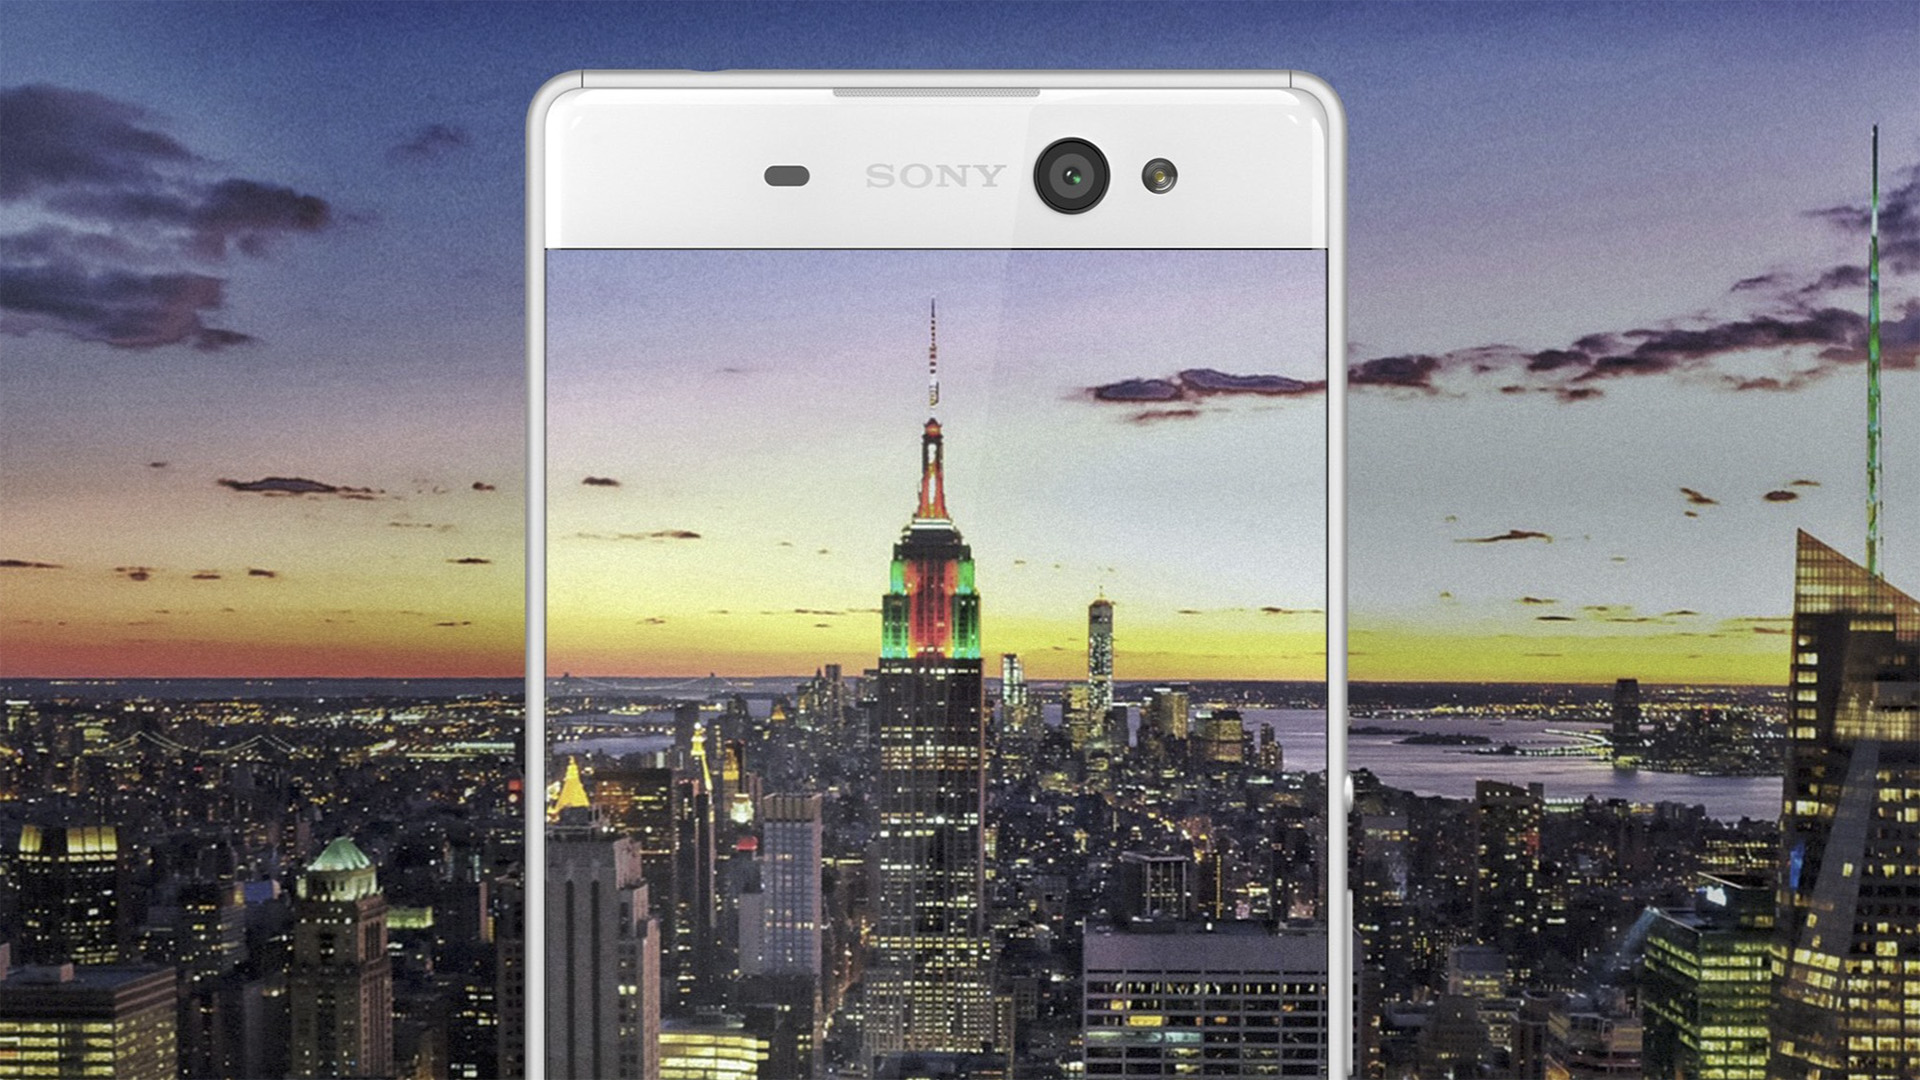 MediaTek Helio P20,Sony Mobile G3221 部分規格揭露